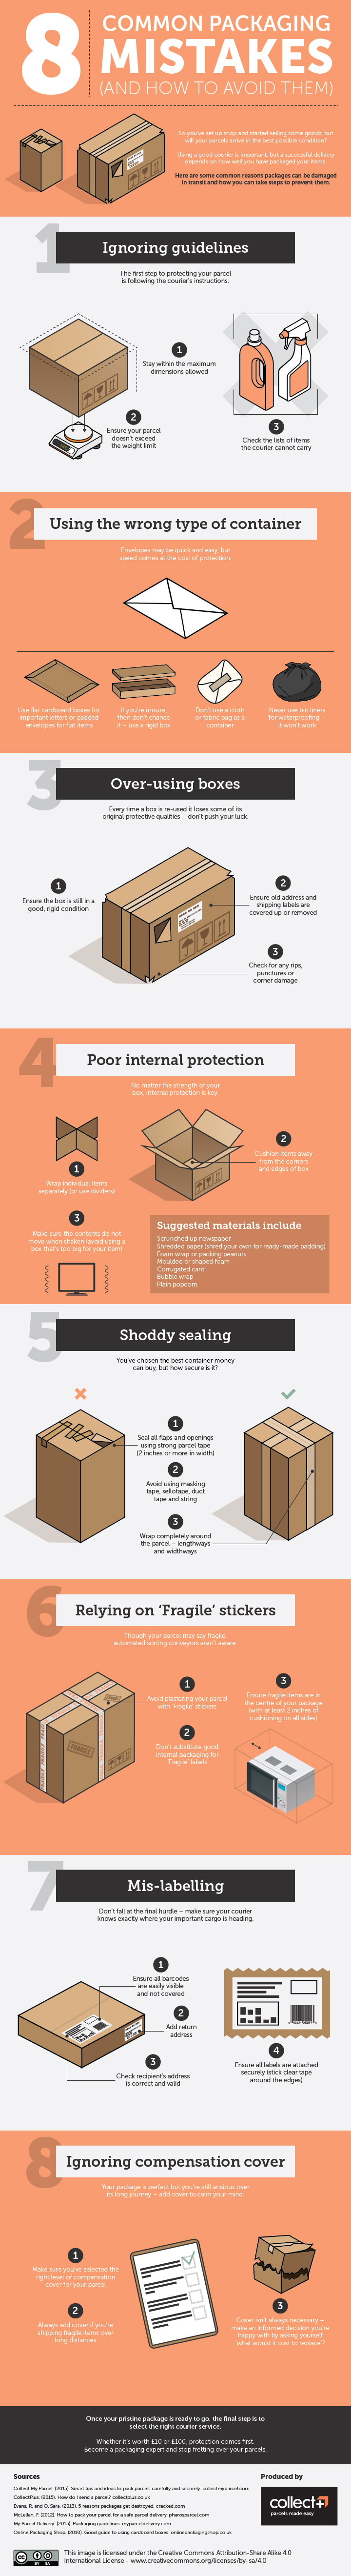 Common packaging mistakes